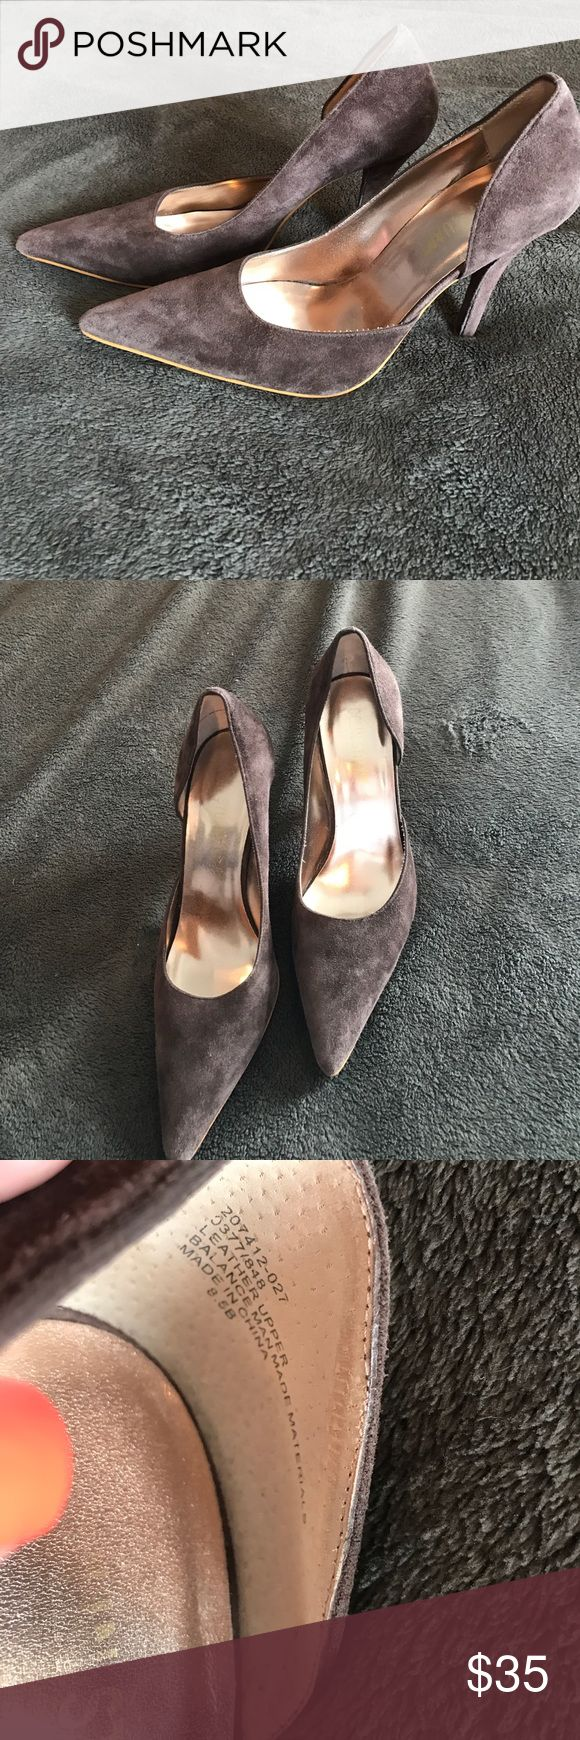 Colin Stuart Victoria Secret suede heels 8.5 brown Colin Stuart Victoria Secret suede heels 8.5 brown EUC. Minimal wear on soles. Inside in perfect condition. Leather upper. Balance man made material. Bin 4 Colin Stuart Shoes Heels